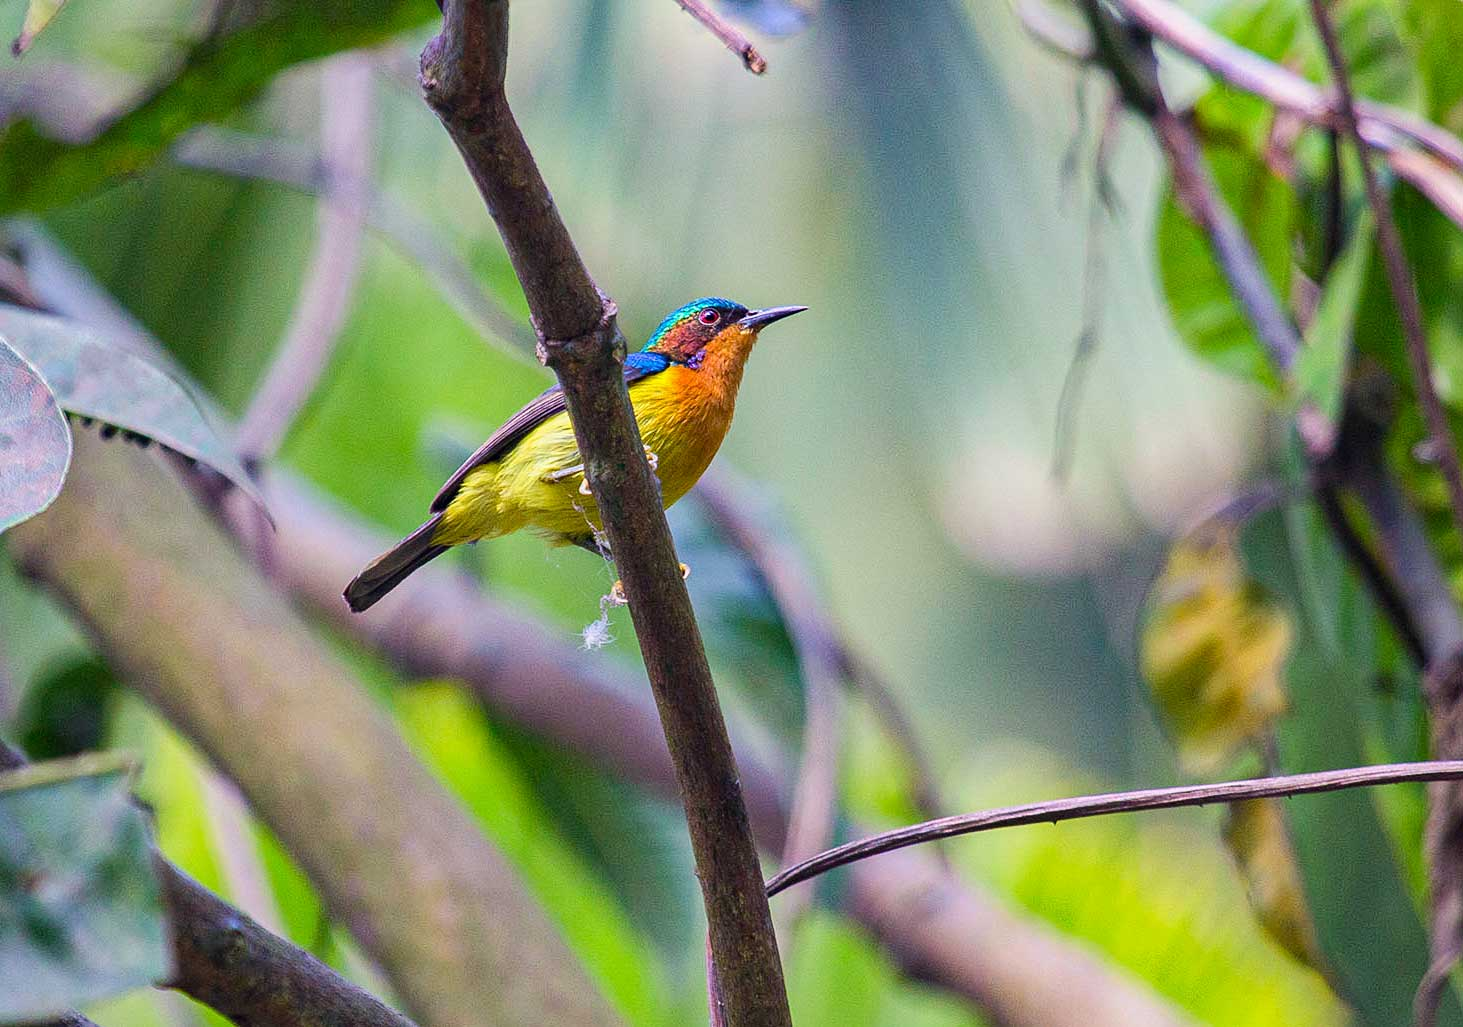 """Sunbirds are among the smallest of avians. Most species, like this ruby-cheeked sunbird (Chalcoparia singalensis), weigh less than ten grams. Ruby-cheeked sunbirds are found across Southeast Asia in moist forests and forest-adjacent habitats. """"This is a predominantly low-elevation species, found in the lowland evergreen forests of northeast India,"""" says Dalvi. """"They have much straighter bills compared to other species and are commonly seen in Assam's Kaziranga and Nameri National Park."""" Photo: Imon Abedin  Cover photo: A male green-tailed sunbird in West Bengal. Photo: Arindam Bhattacharya"""